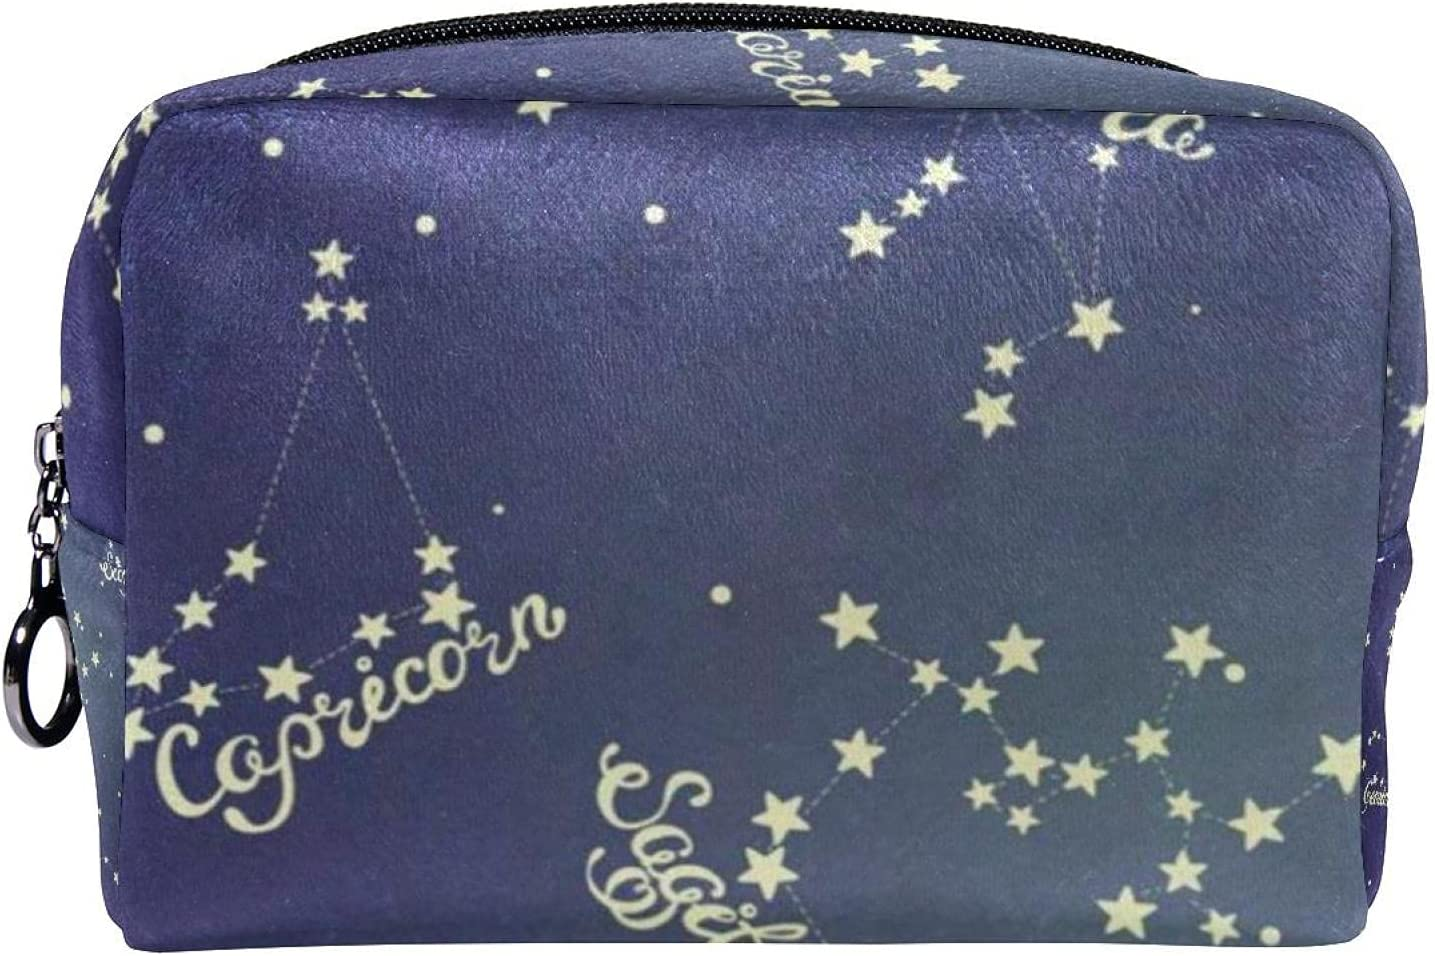 Makeup Bag Portable Travel Constellation Bags Cash special price ...